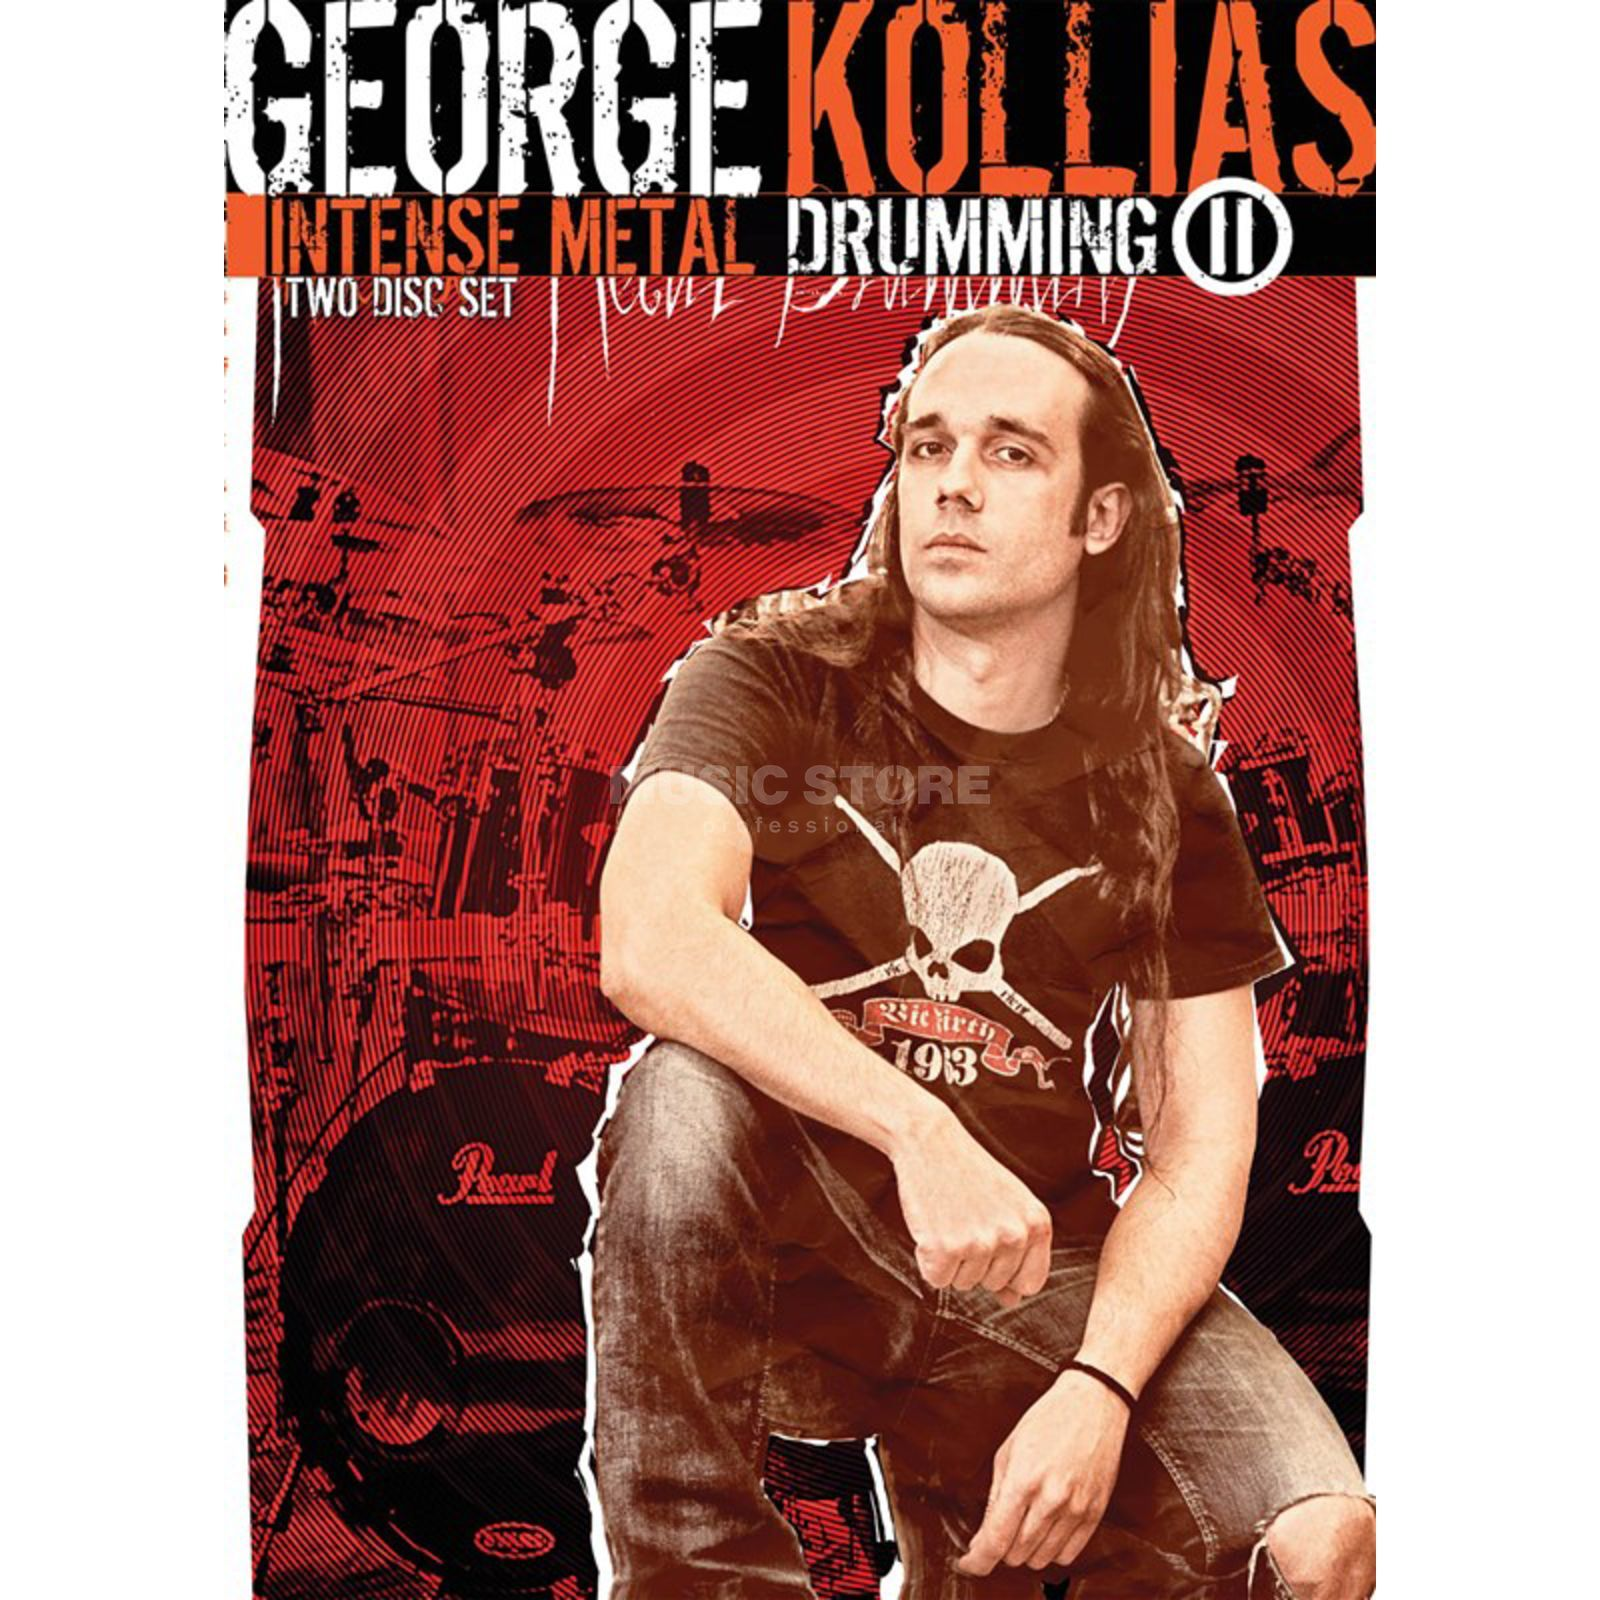 Hudson Music Intense Metal Drumming II George Kollias, DVD Produktbild